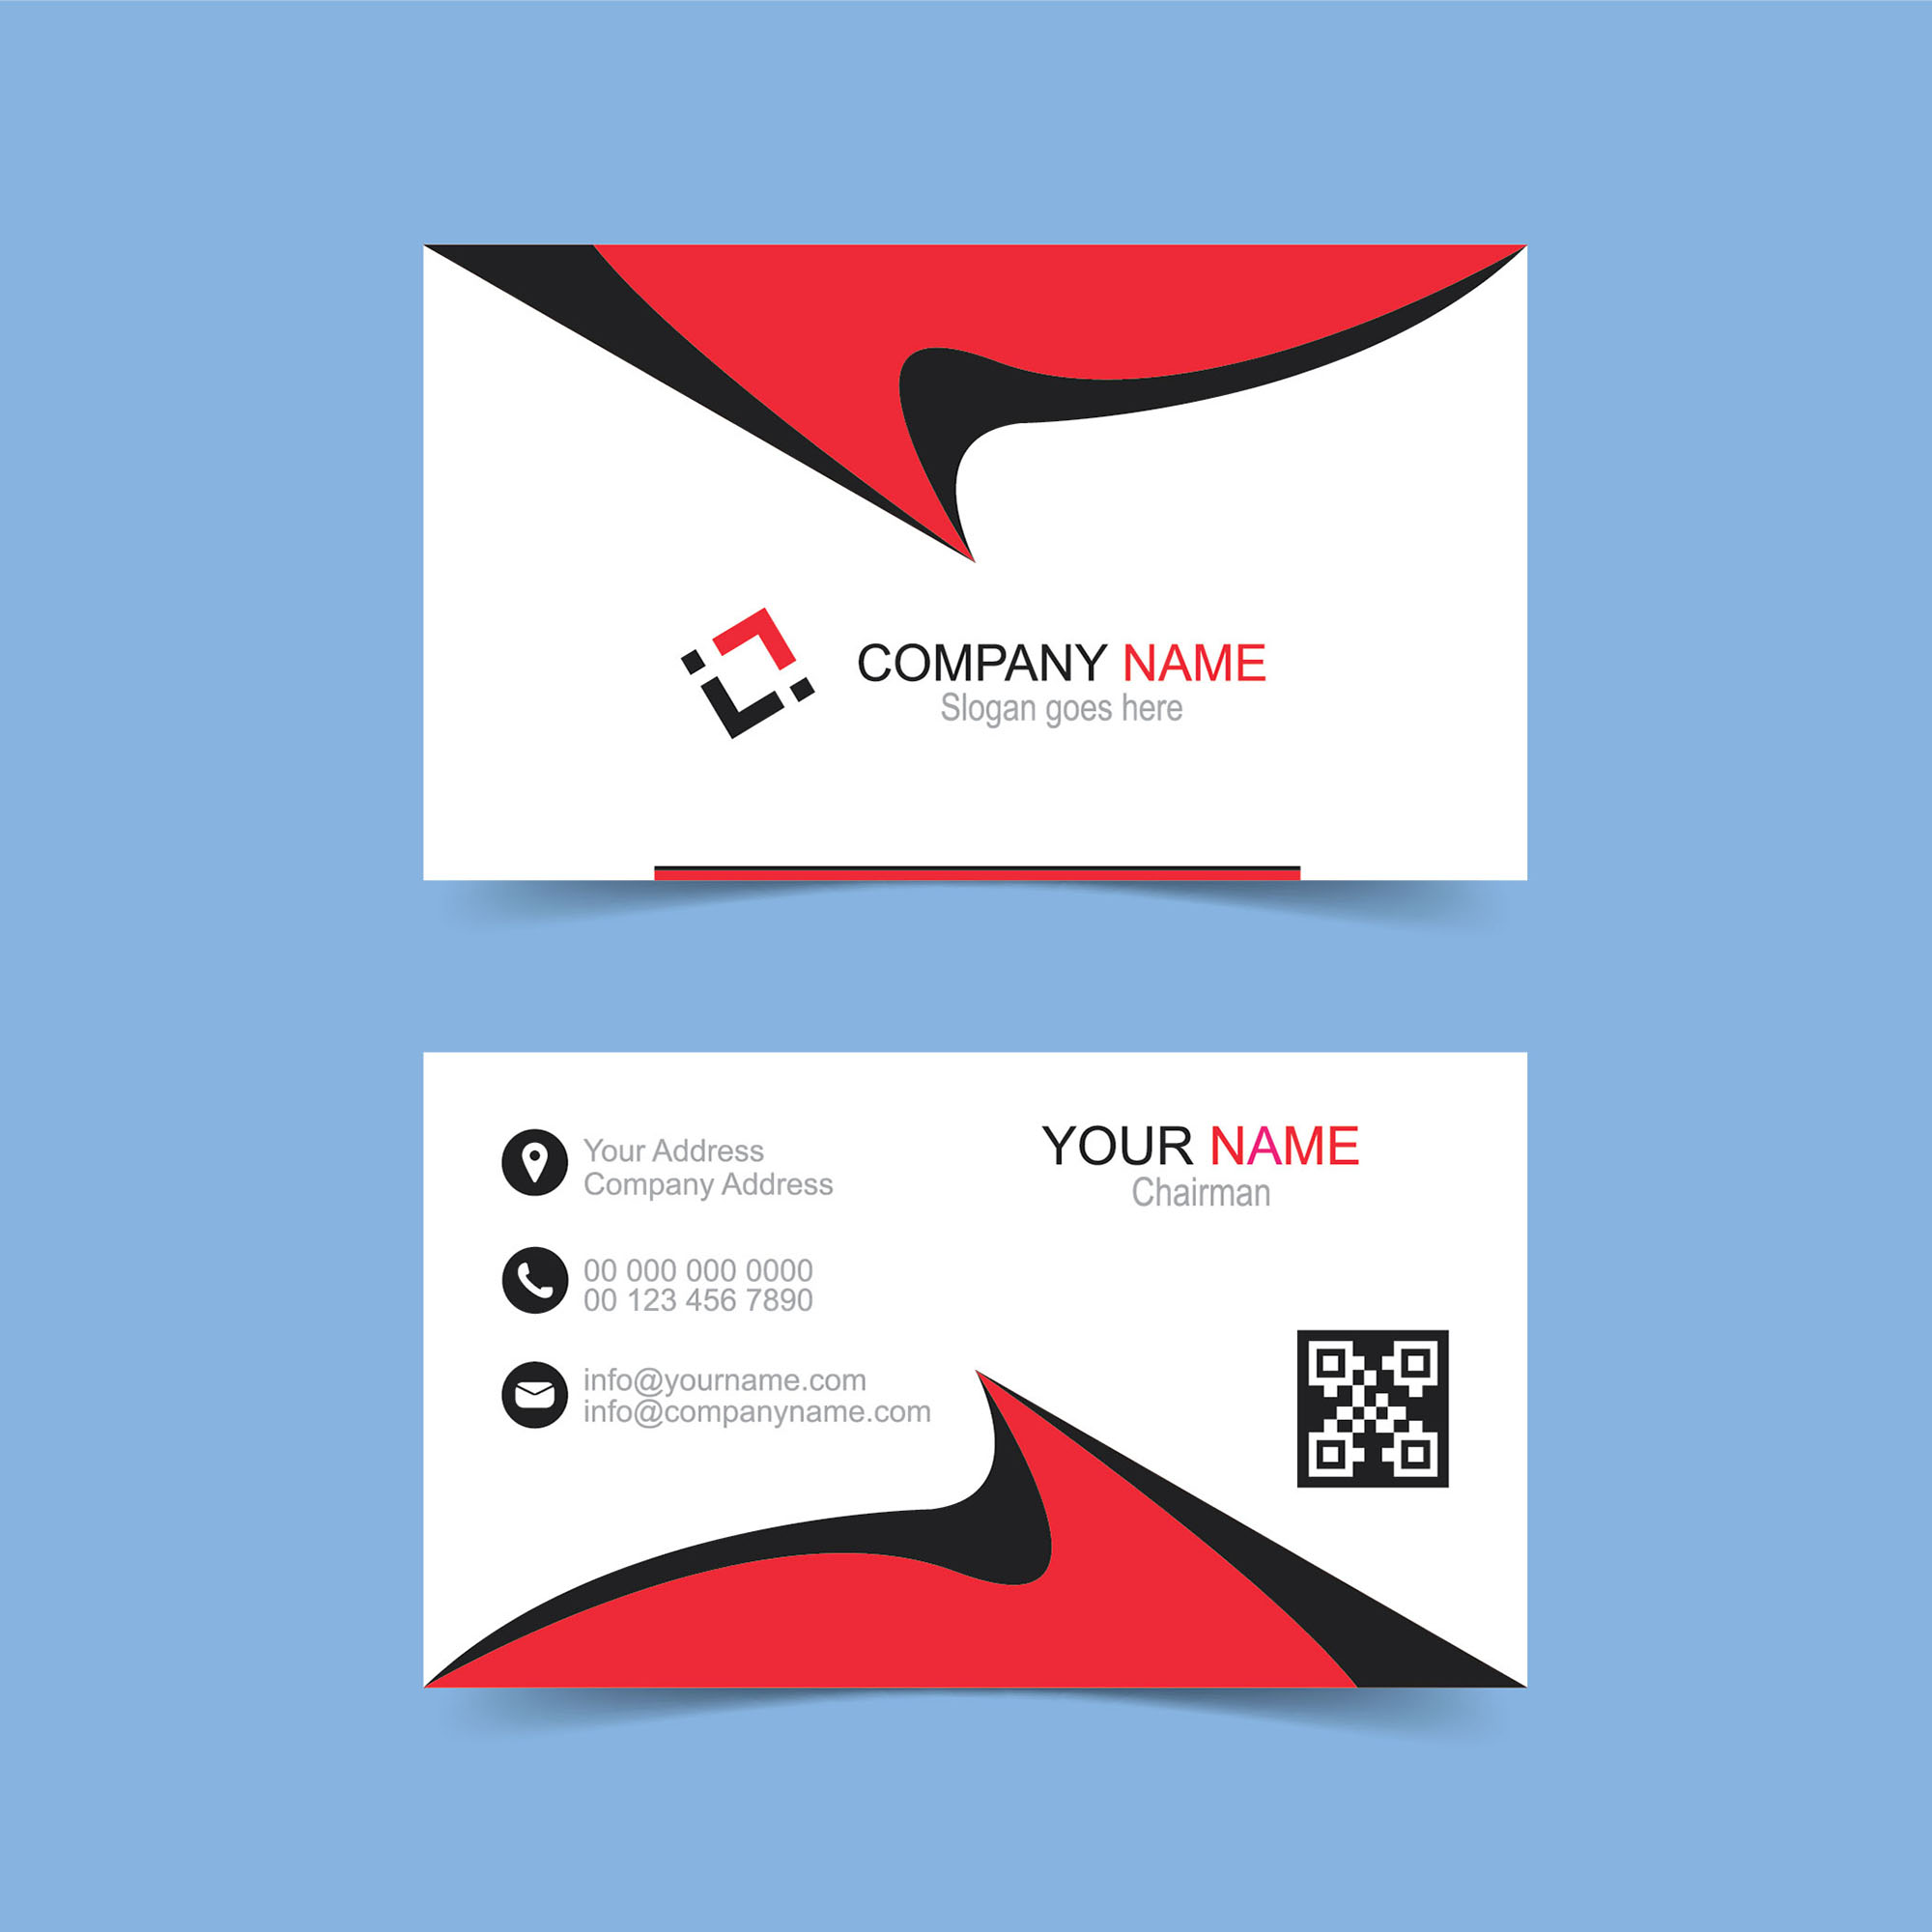 Double sided business card free download wisxi business card business cards business card design business card template design templates cheaphphosting Images